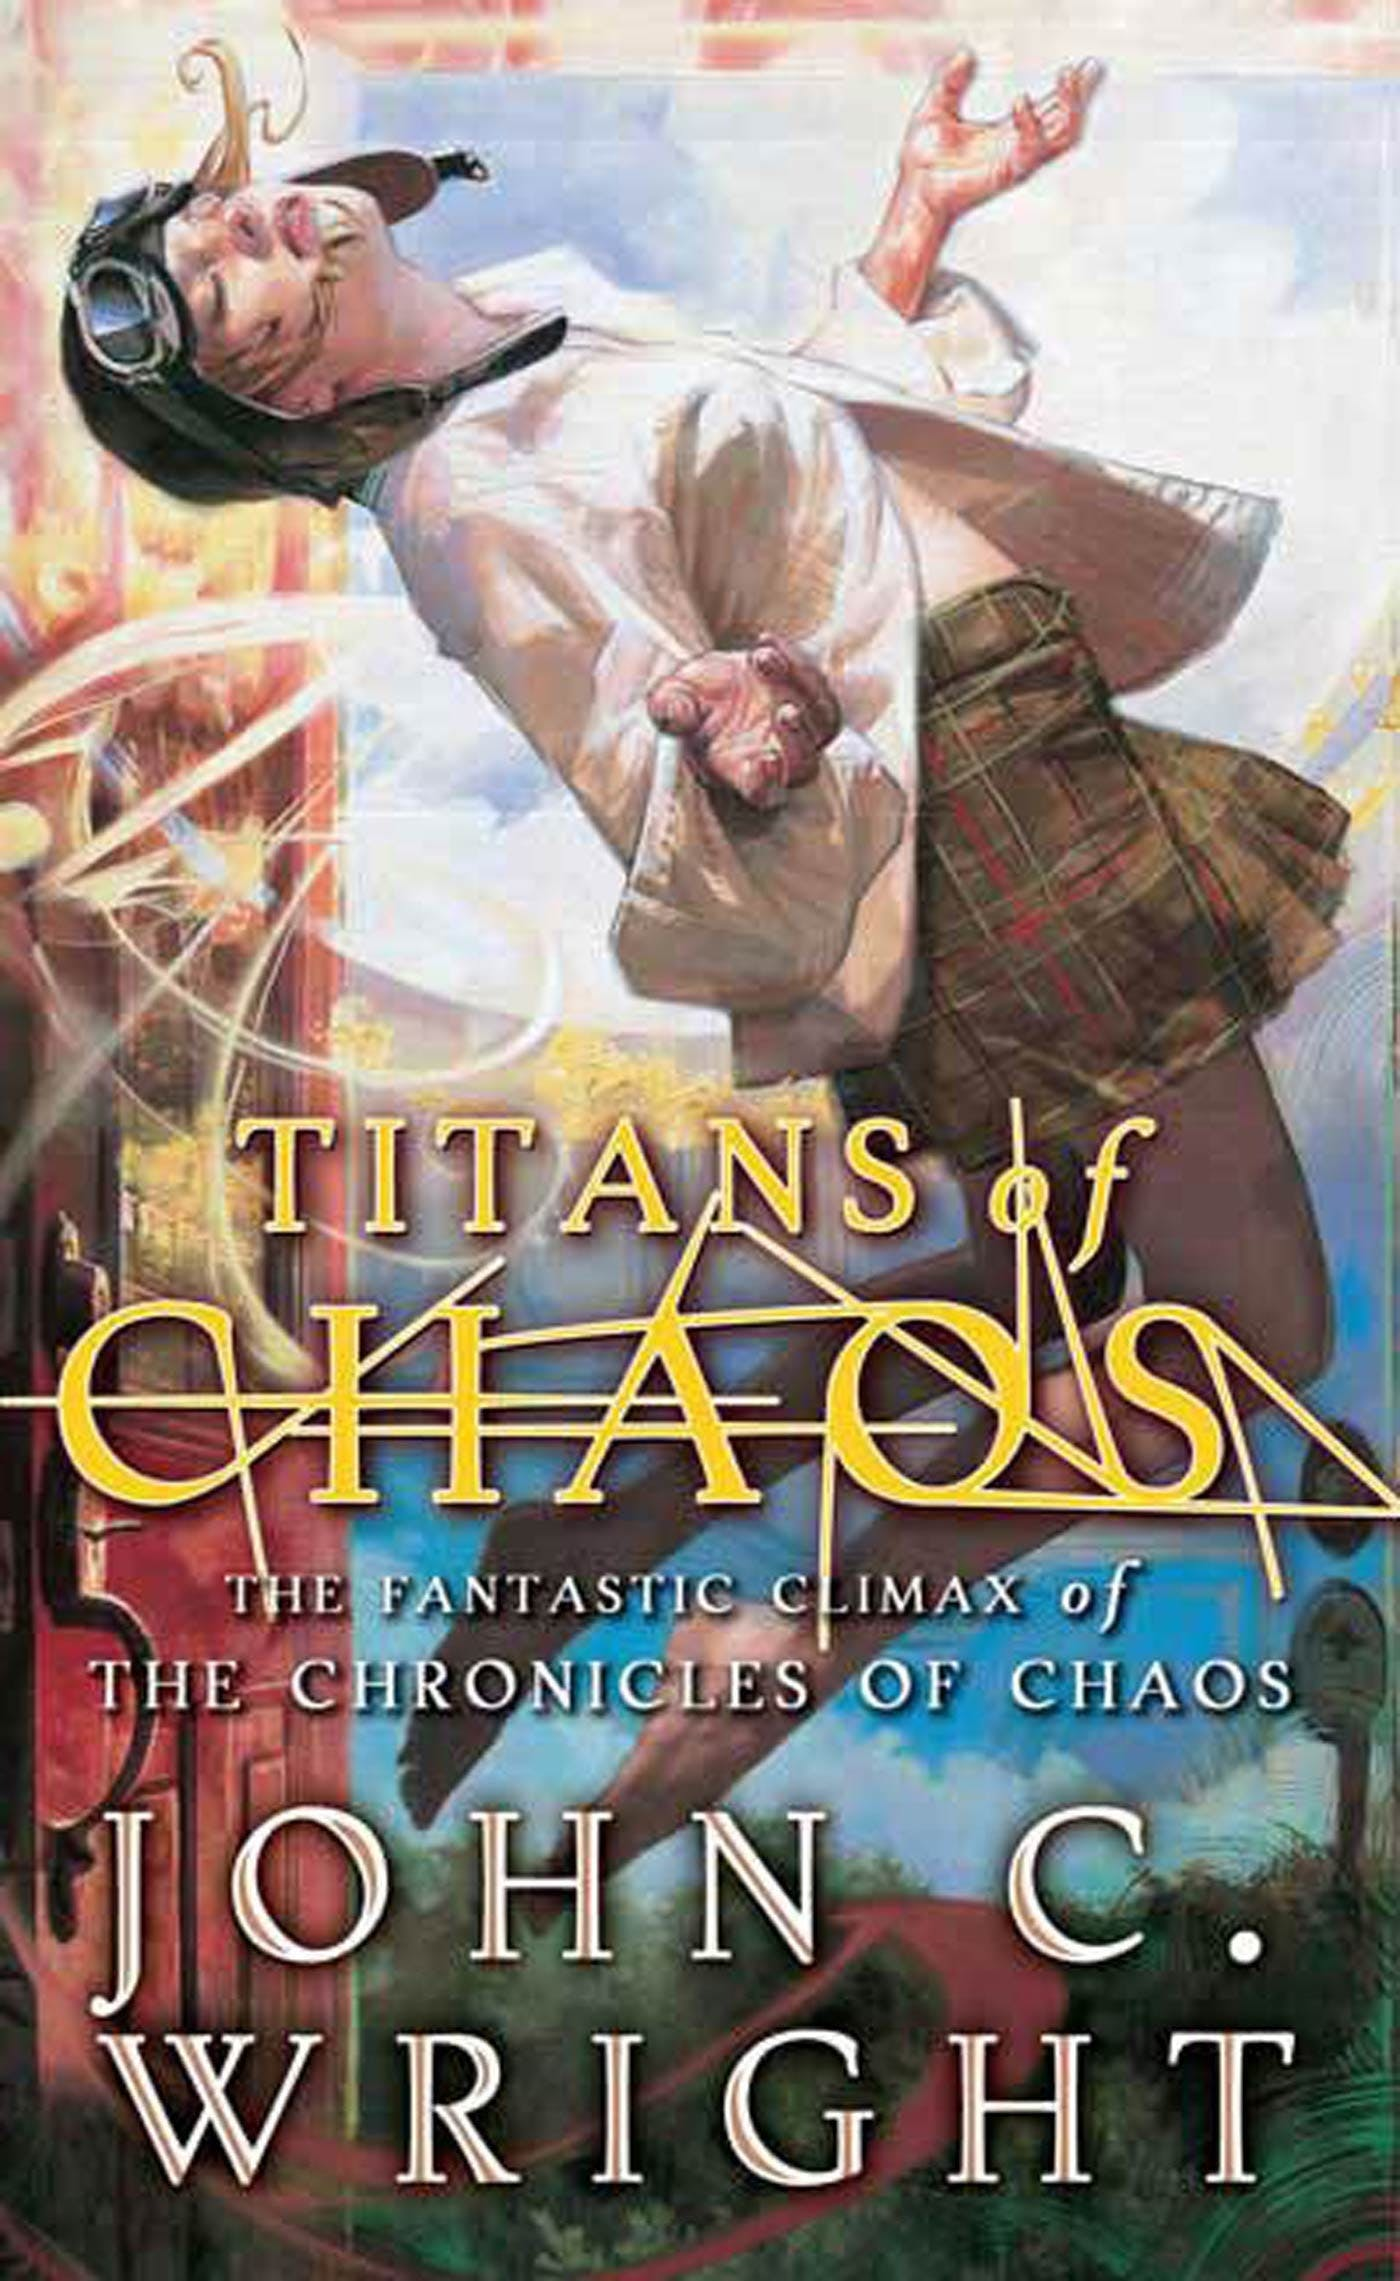 Image of Titans of Chaos